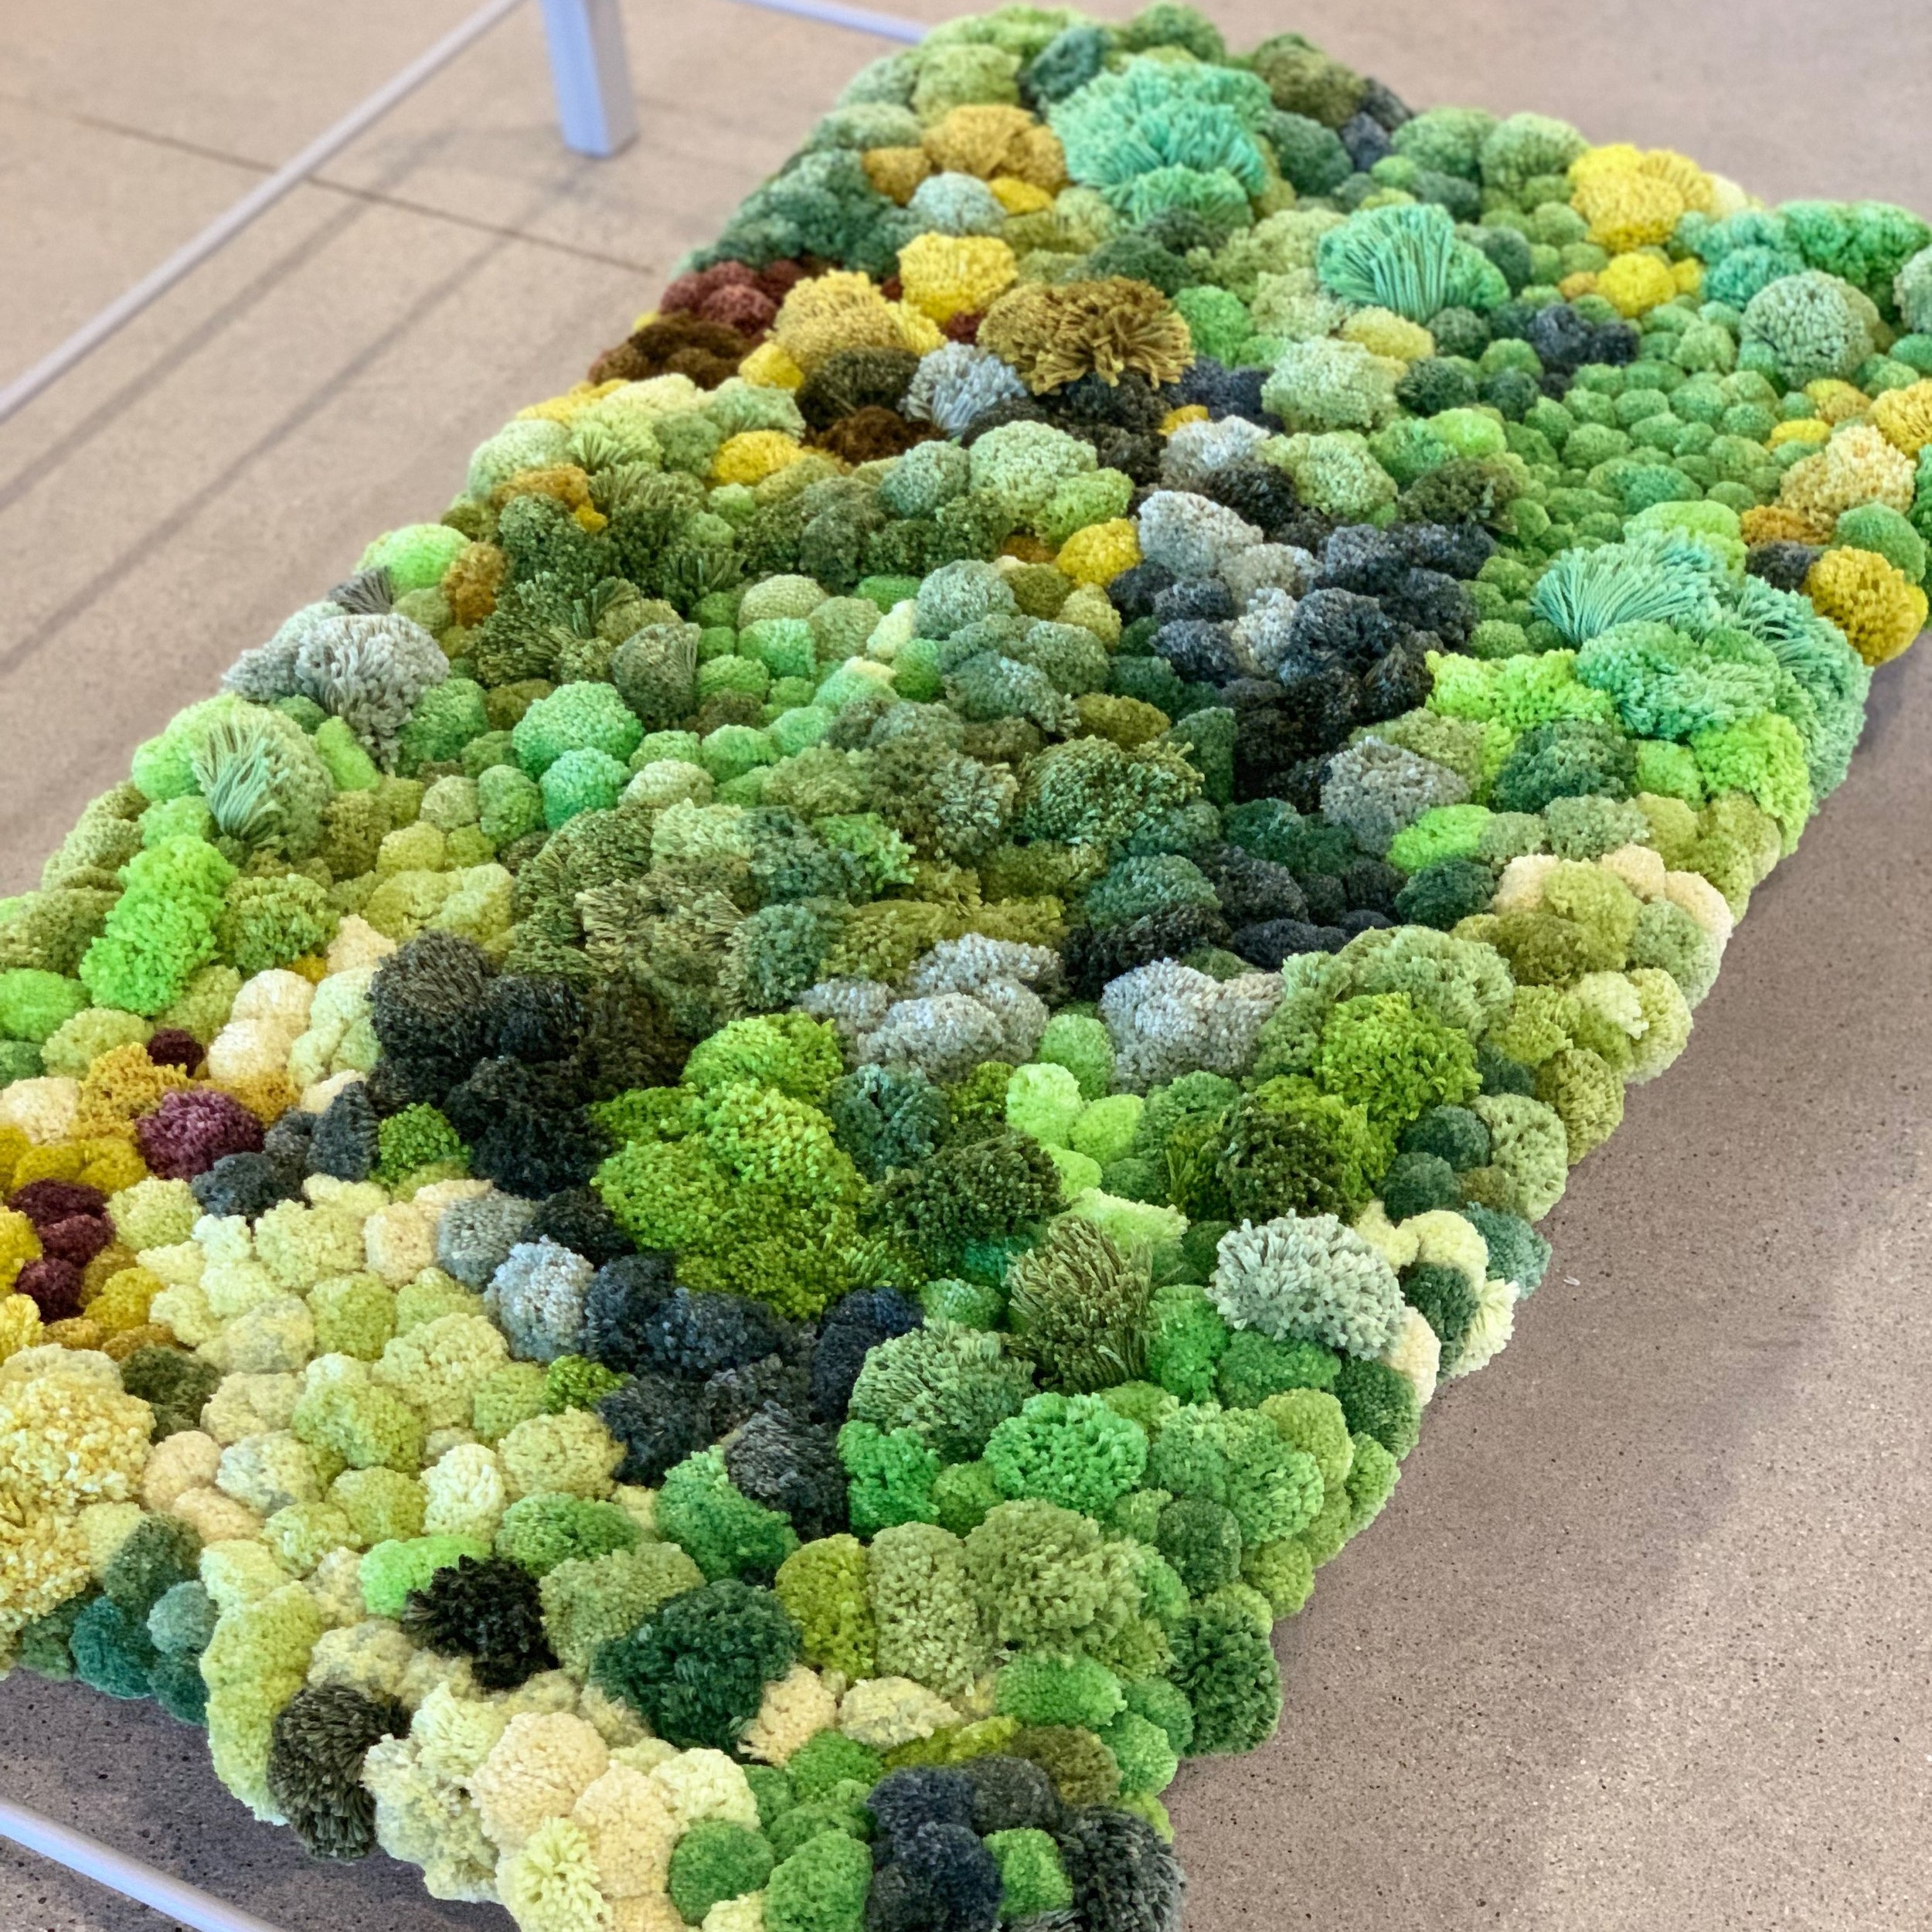 Emily Sullivan Smith,  Placeholder for Posterity: Color Portrait of the Forest Floor , 2019, hand dyed cotton / bamboo yarn, nylon thread, wool, $10,000